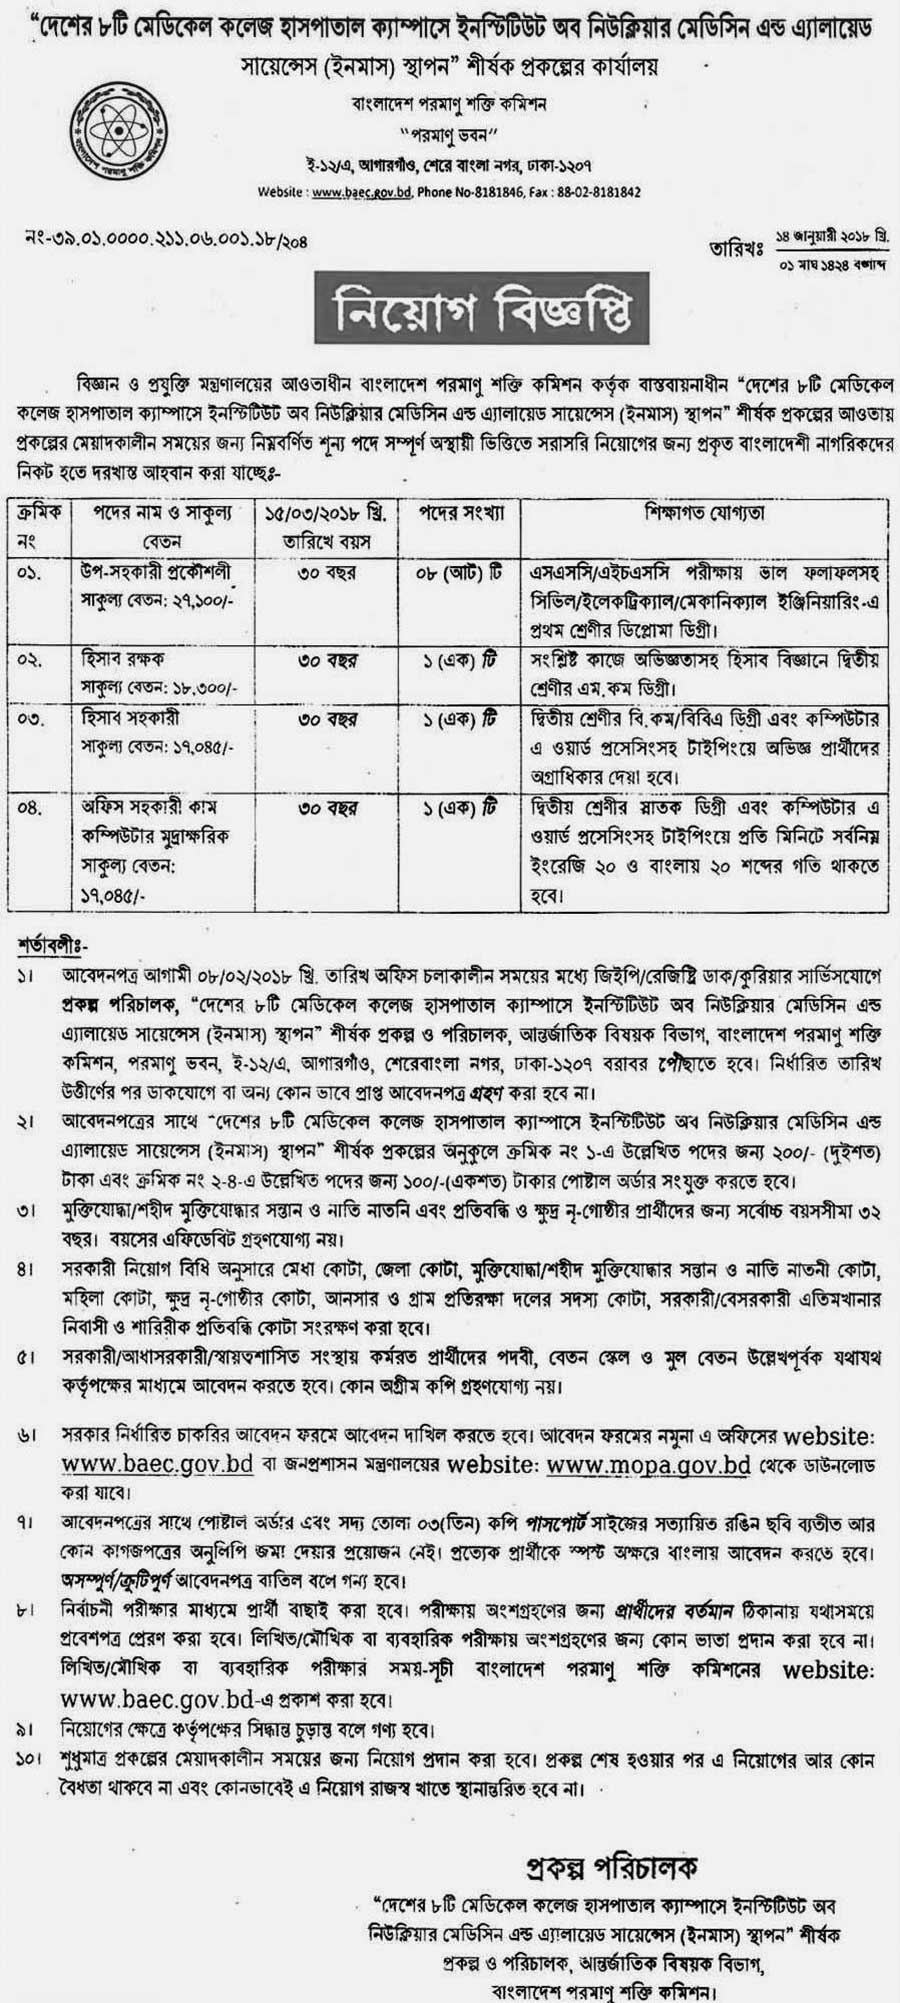 Bangladesh Atomic Energy Commission (BAEC) Job - alormela.org